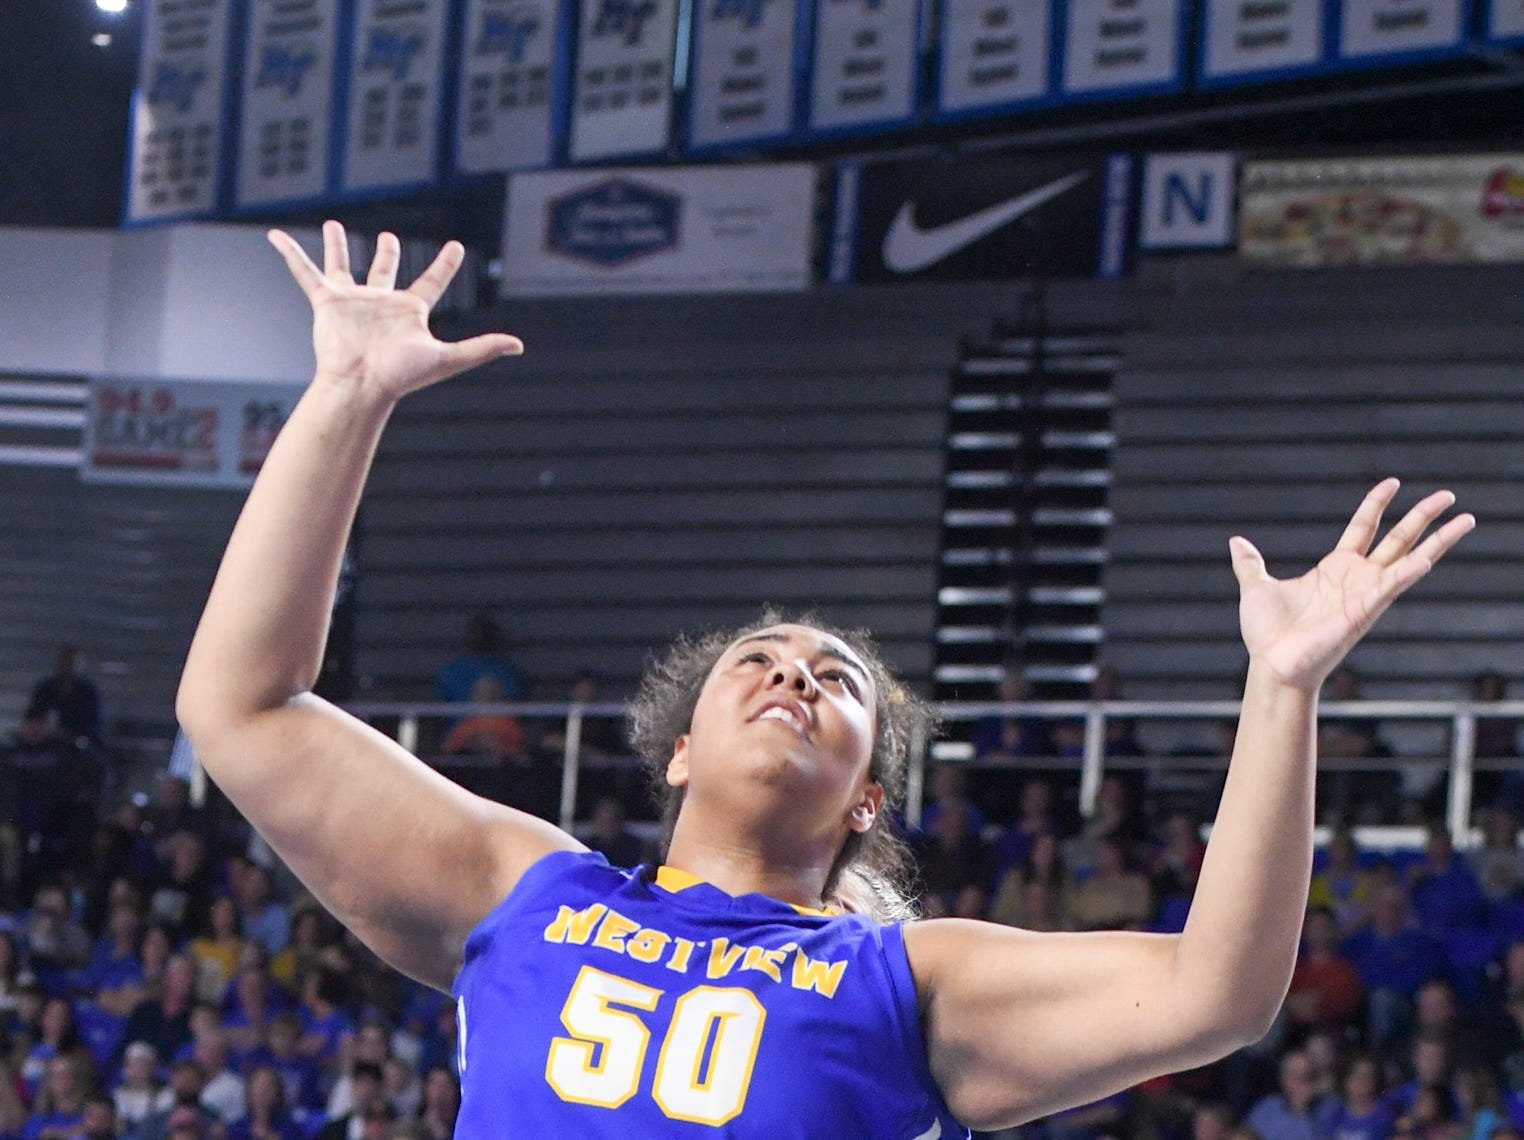 Westview's Raegan Johnson (50) reaches up to grab a rebound during their Class AA championship game against Cheatham County, Saturday, March 9, 2019, in Murfreesboro.